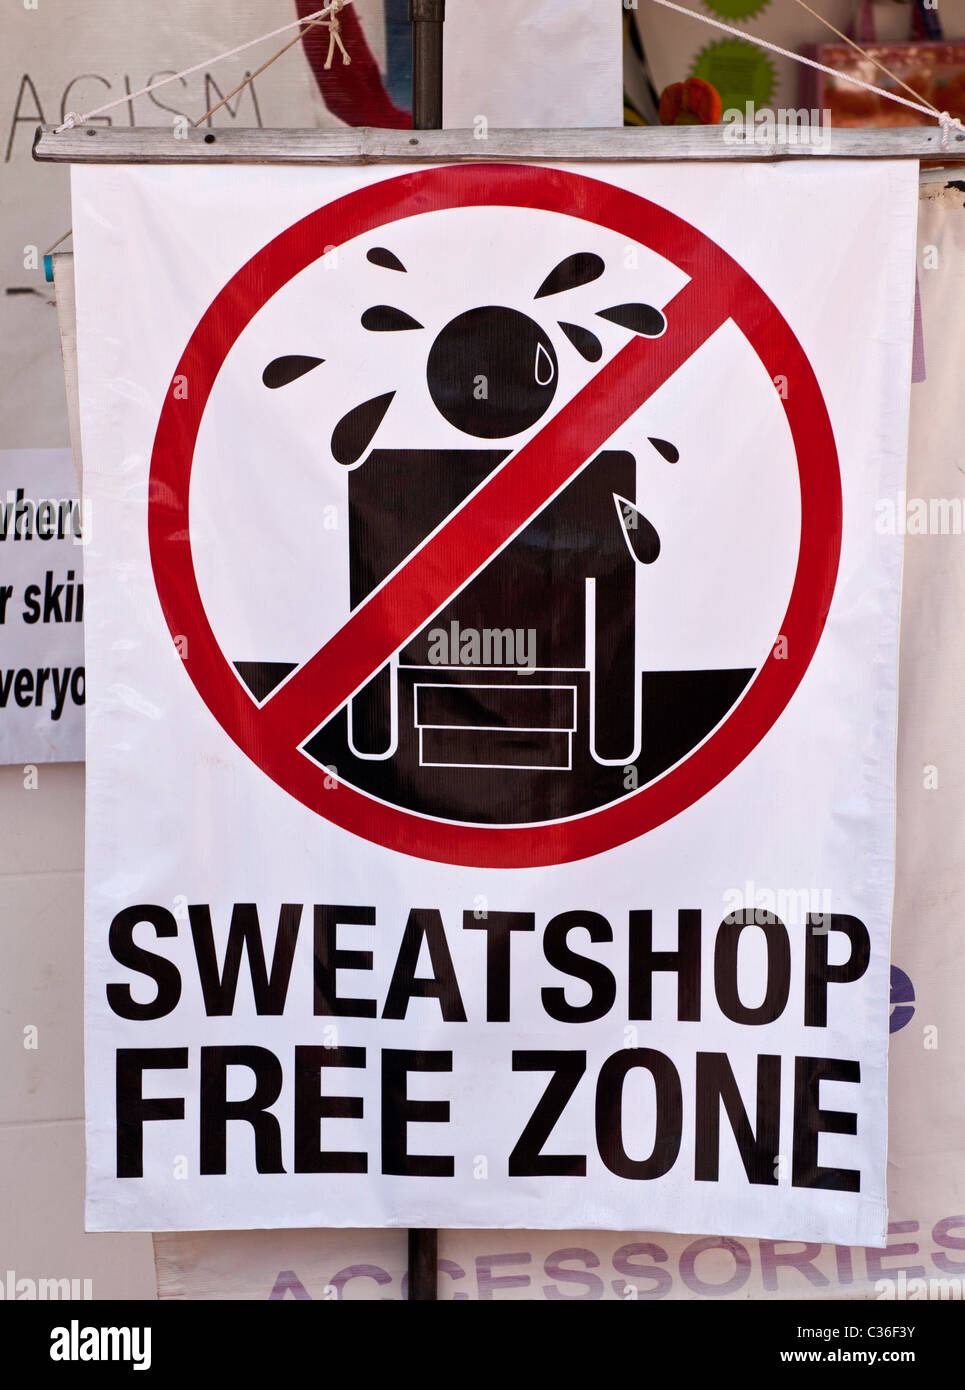 'Sweatshop Free Zone' sign - Stock Image